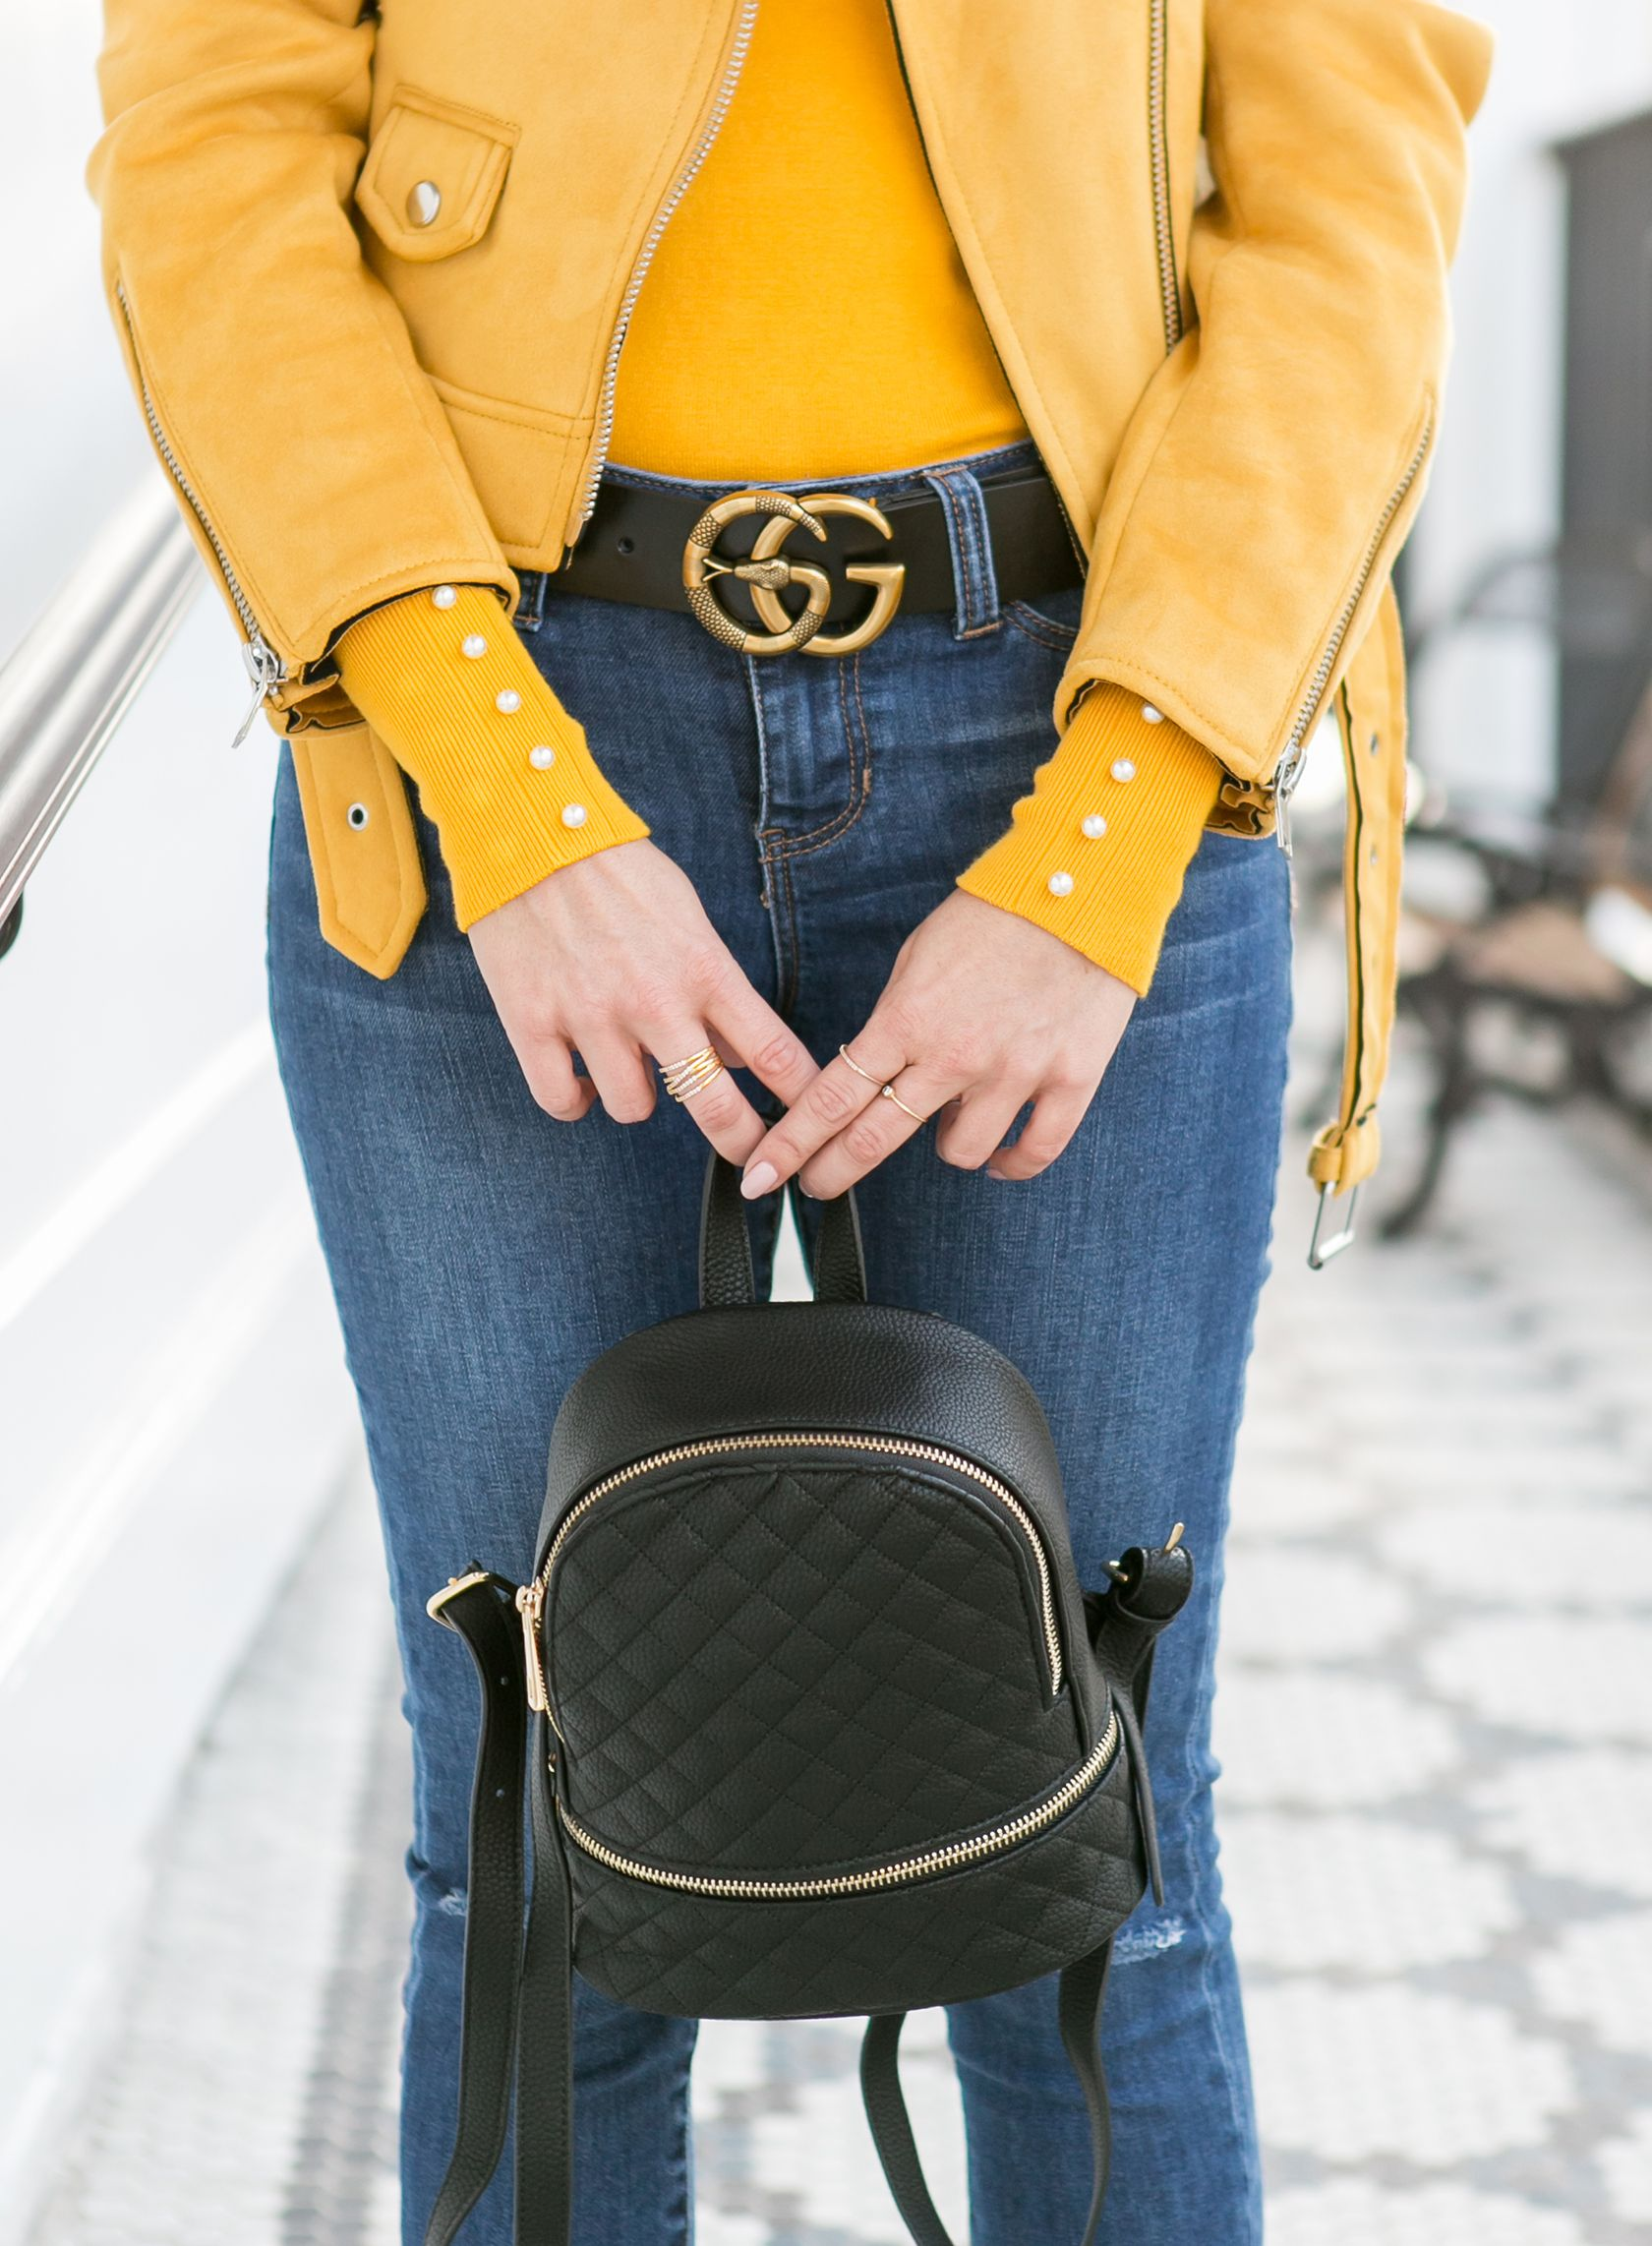 22cb3fcf3d1 Sydne Style wears Gucci snake belt and backpack for fall fashion trends   yellow  denim  jeans  gucci  guccibelt